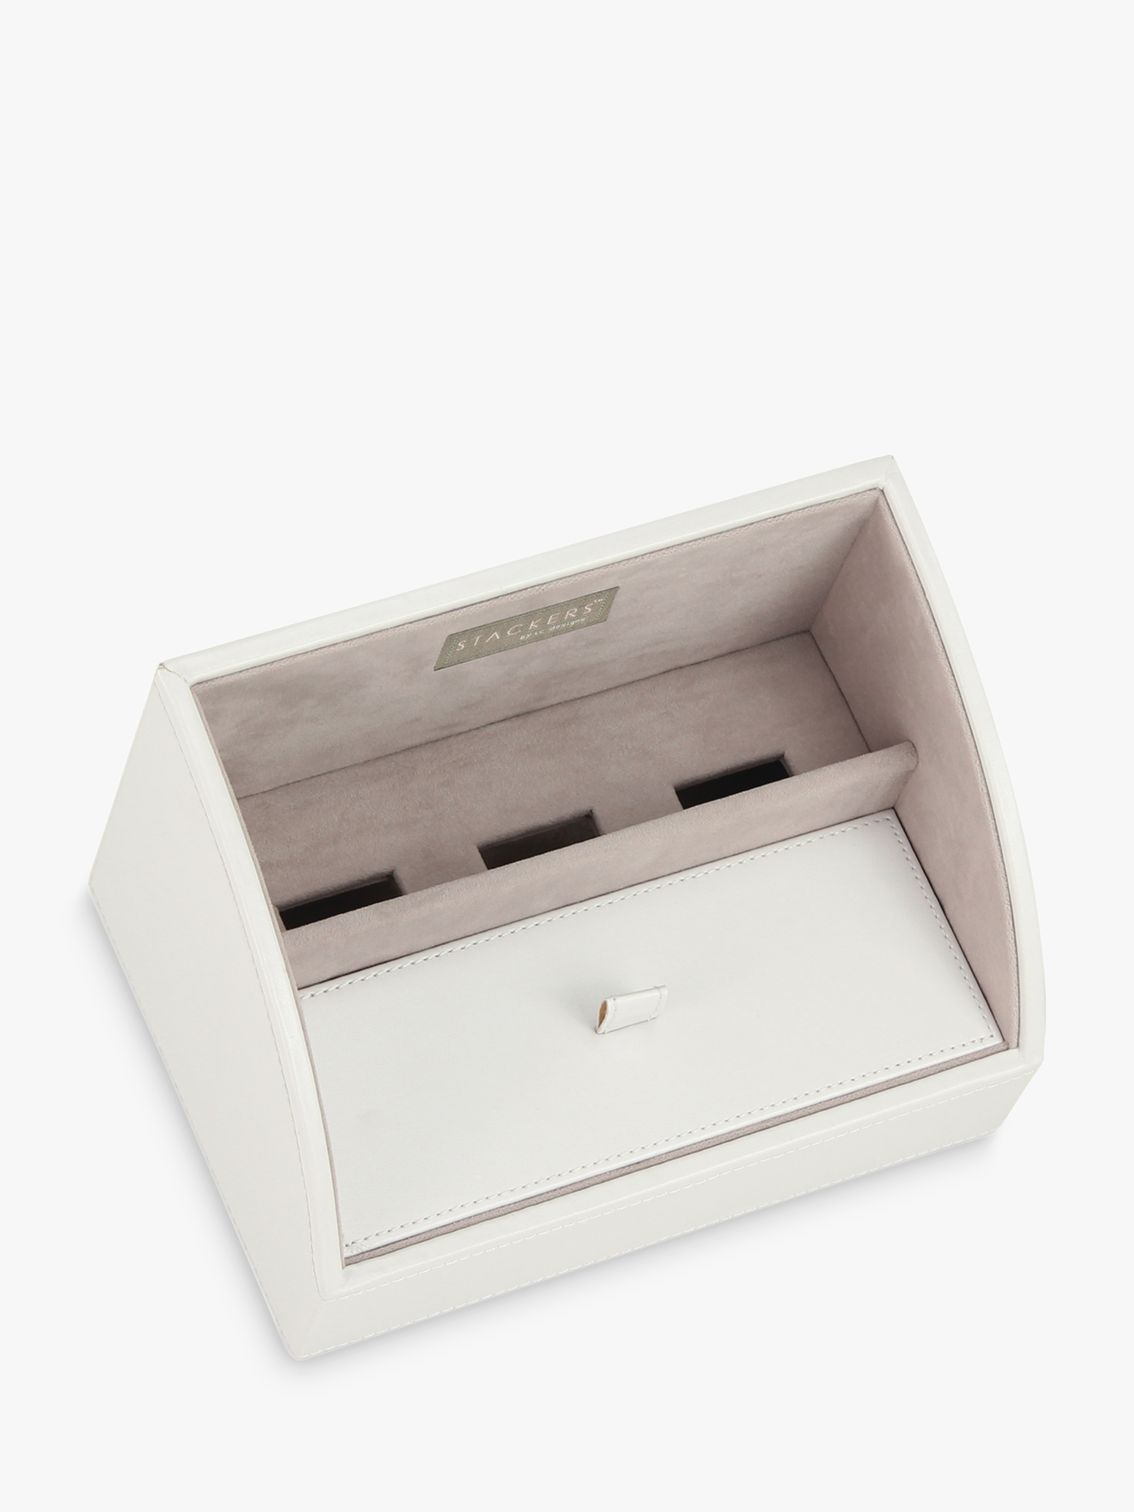 Stackers Stackers Mini Stacker Valet, White